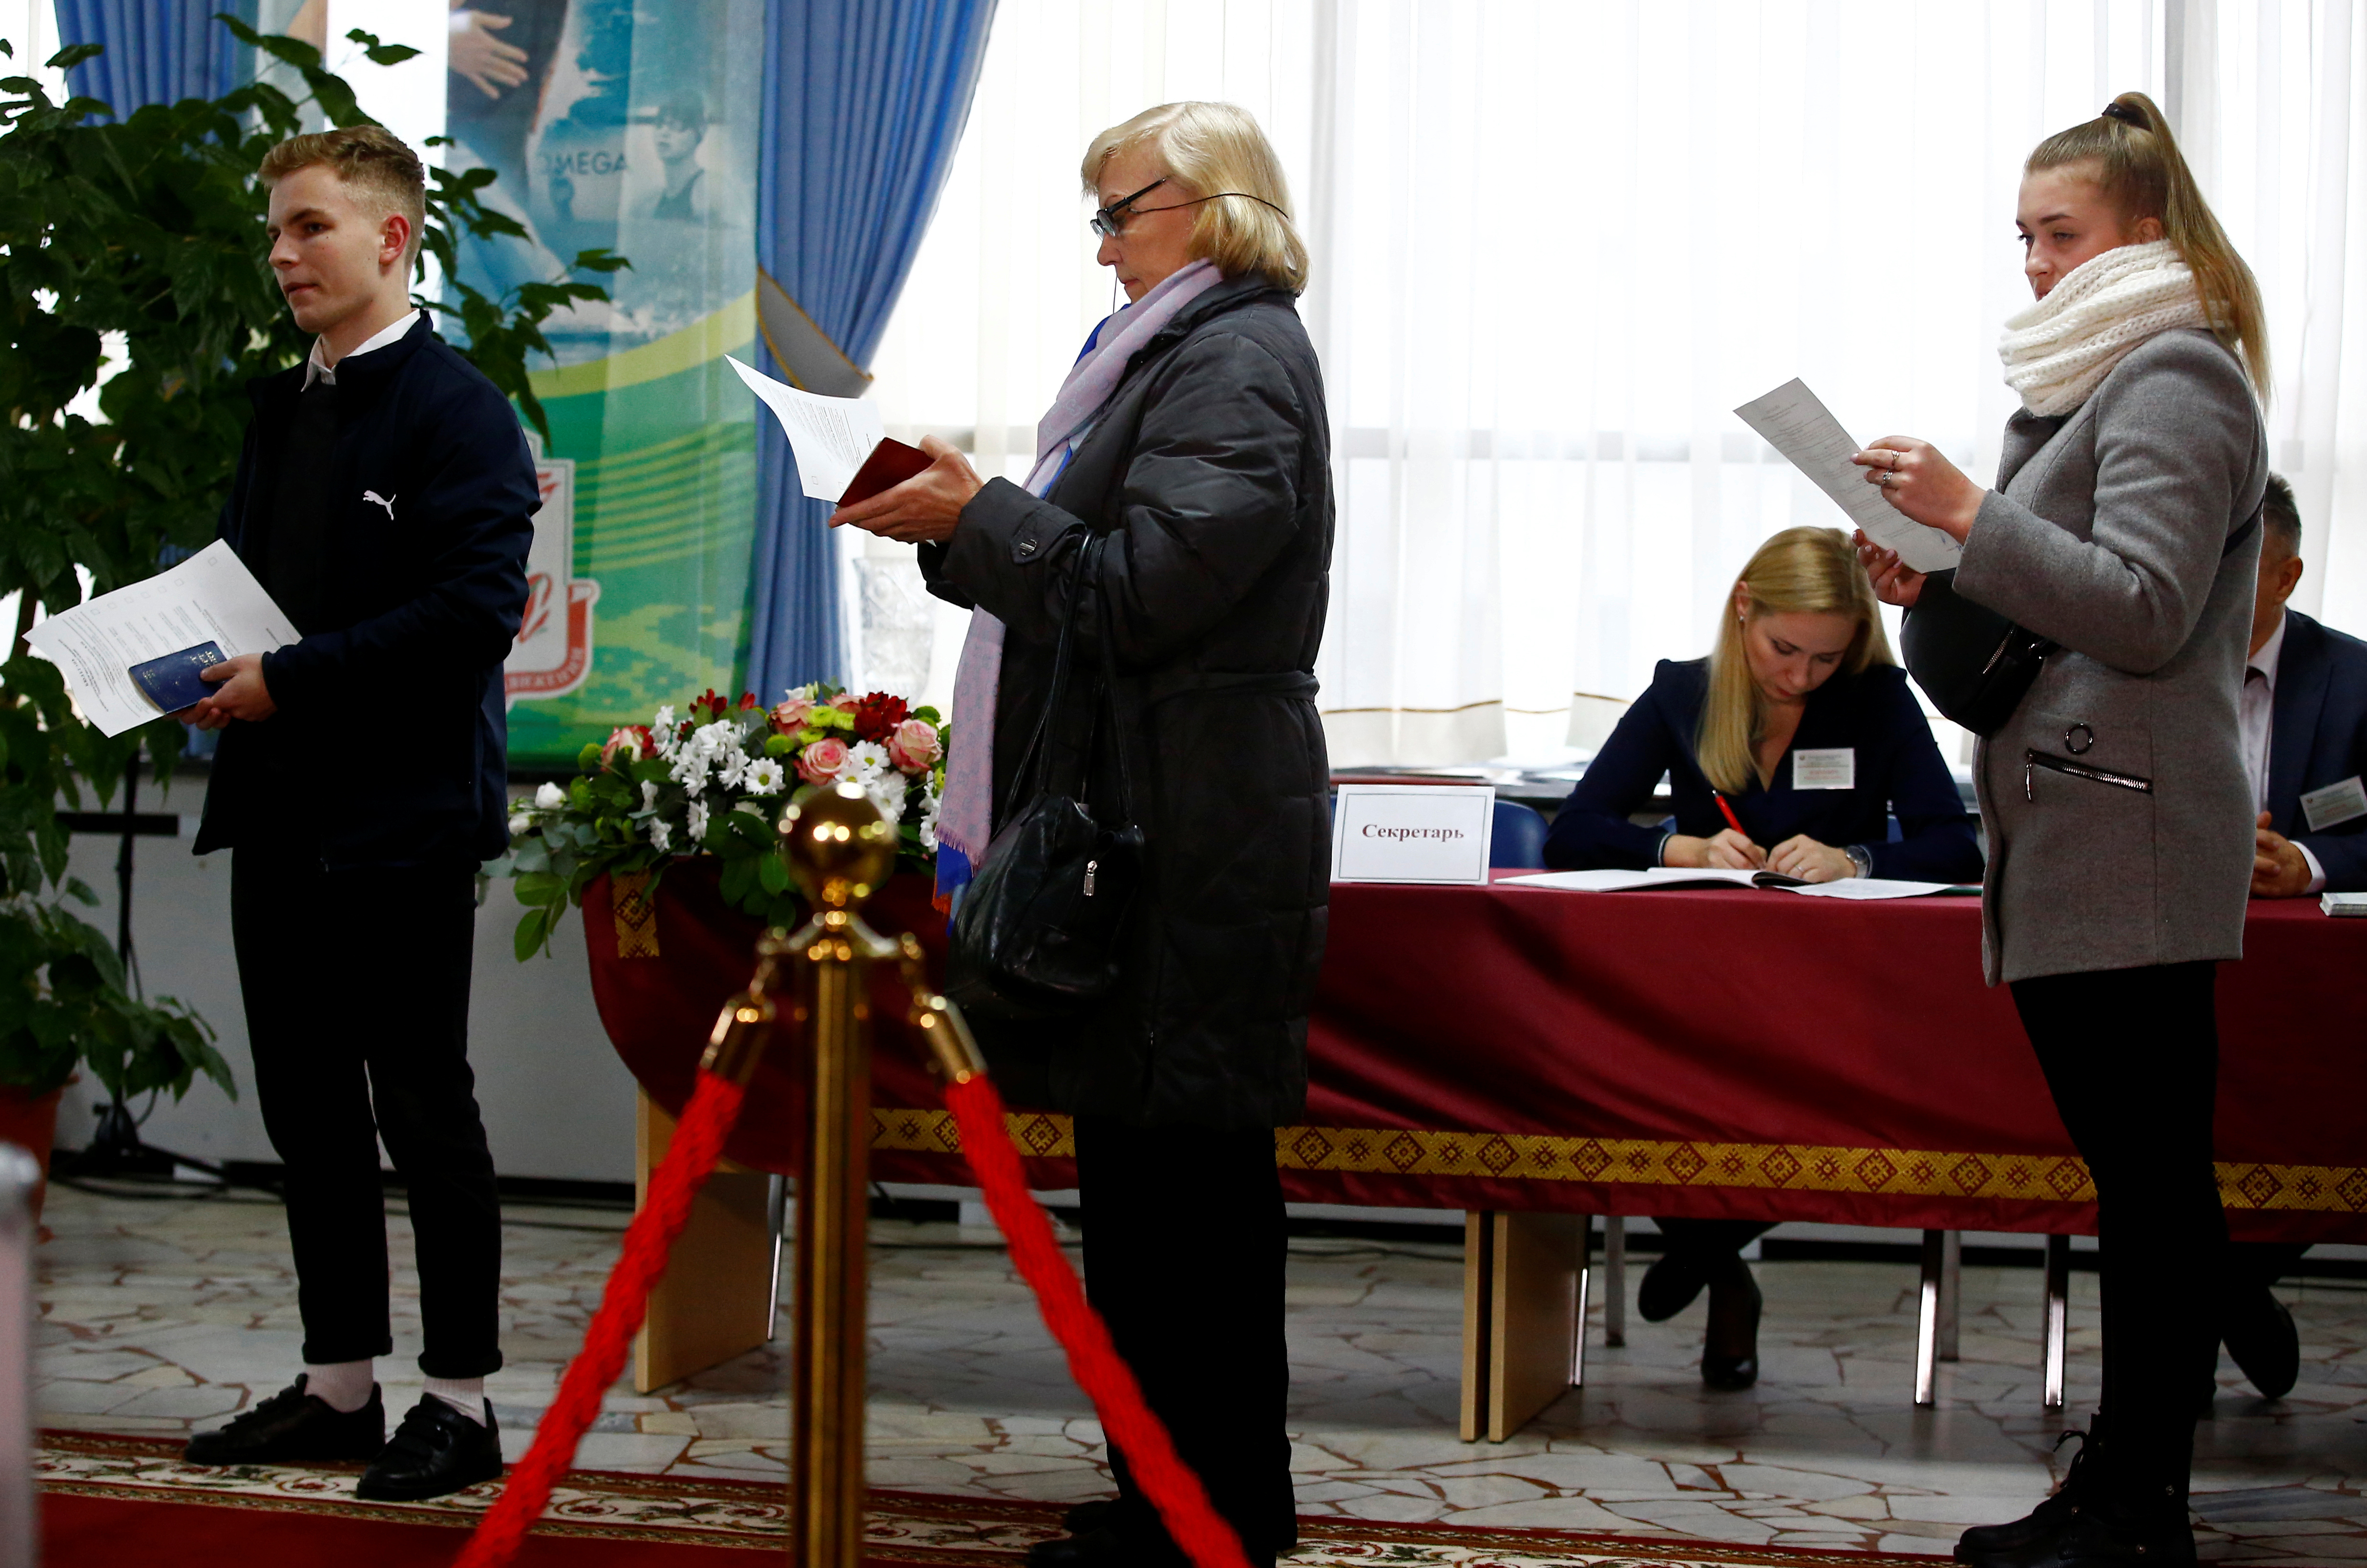 Belarussians Vote Amid Apathy, Growing Pressure From Russia